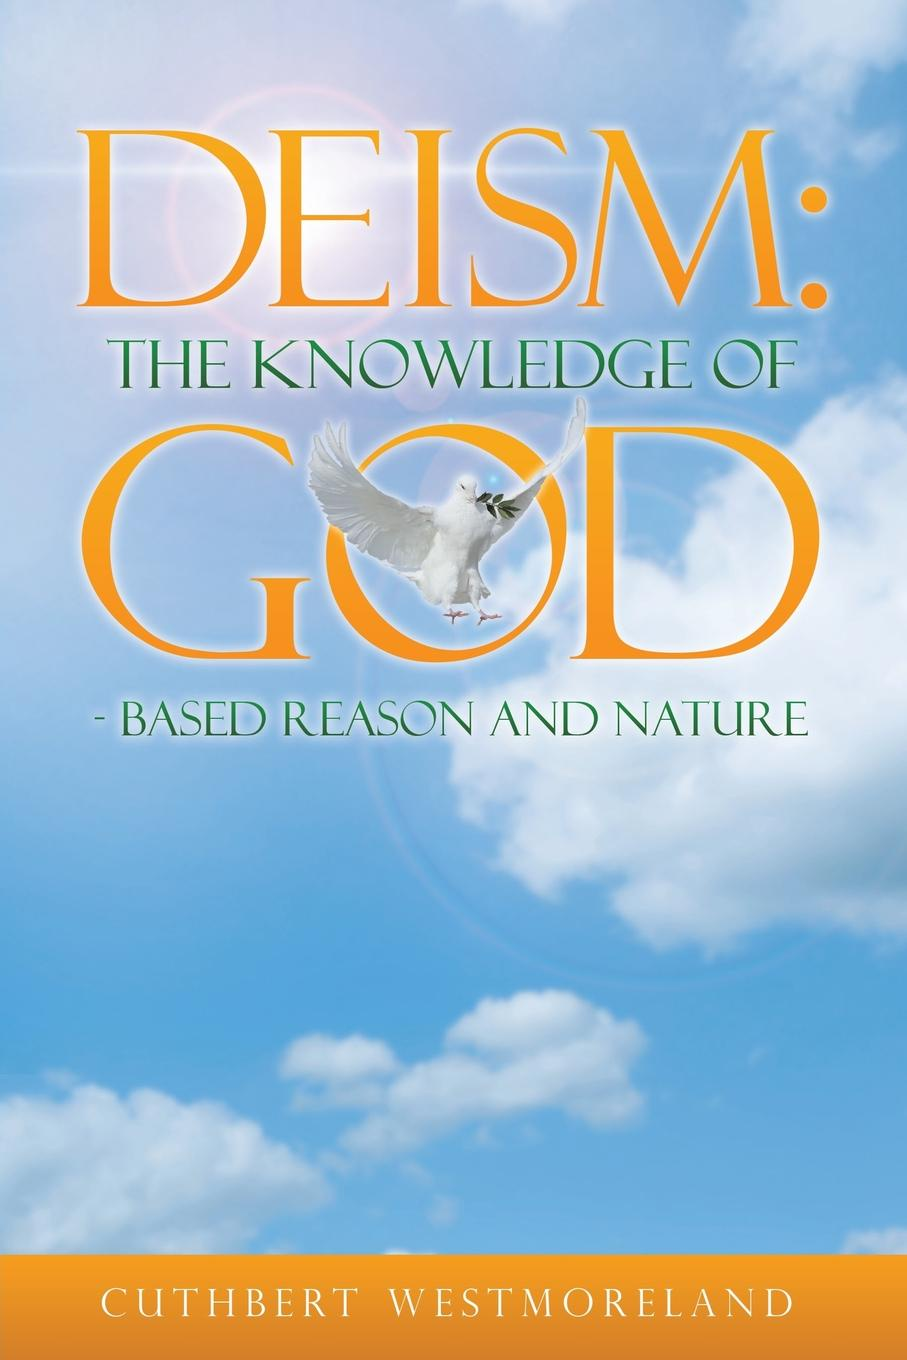 Cuthbert Westmoreland DEISM. The Knowledge of GOD - Based Reason and Nature an examination of the bible or an impartial investigation of supernatural and natural theology wherein the foundations of true religion are illustrated and established to which are added a rational system of faith and remarks on the union of